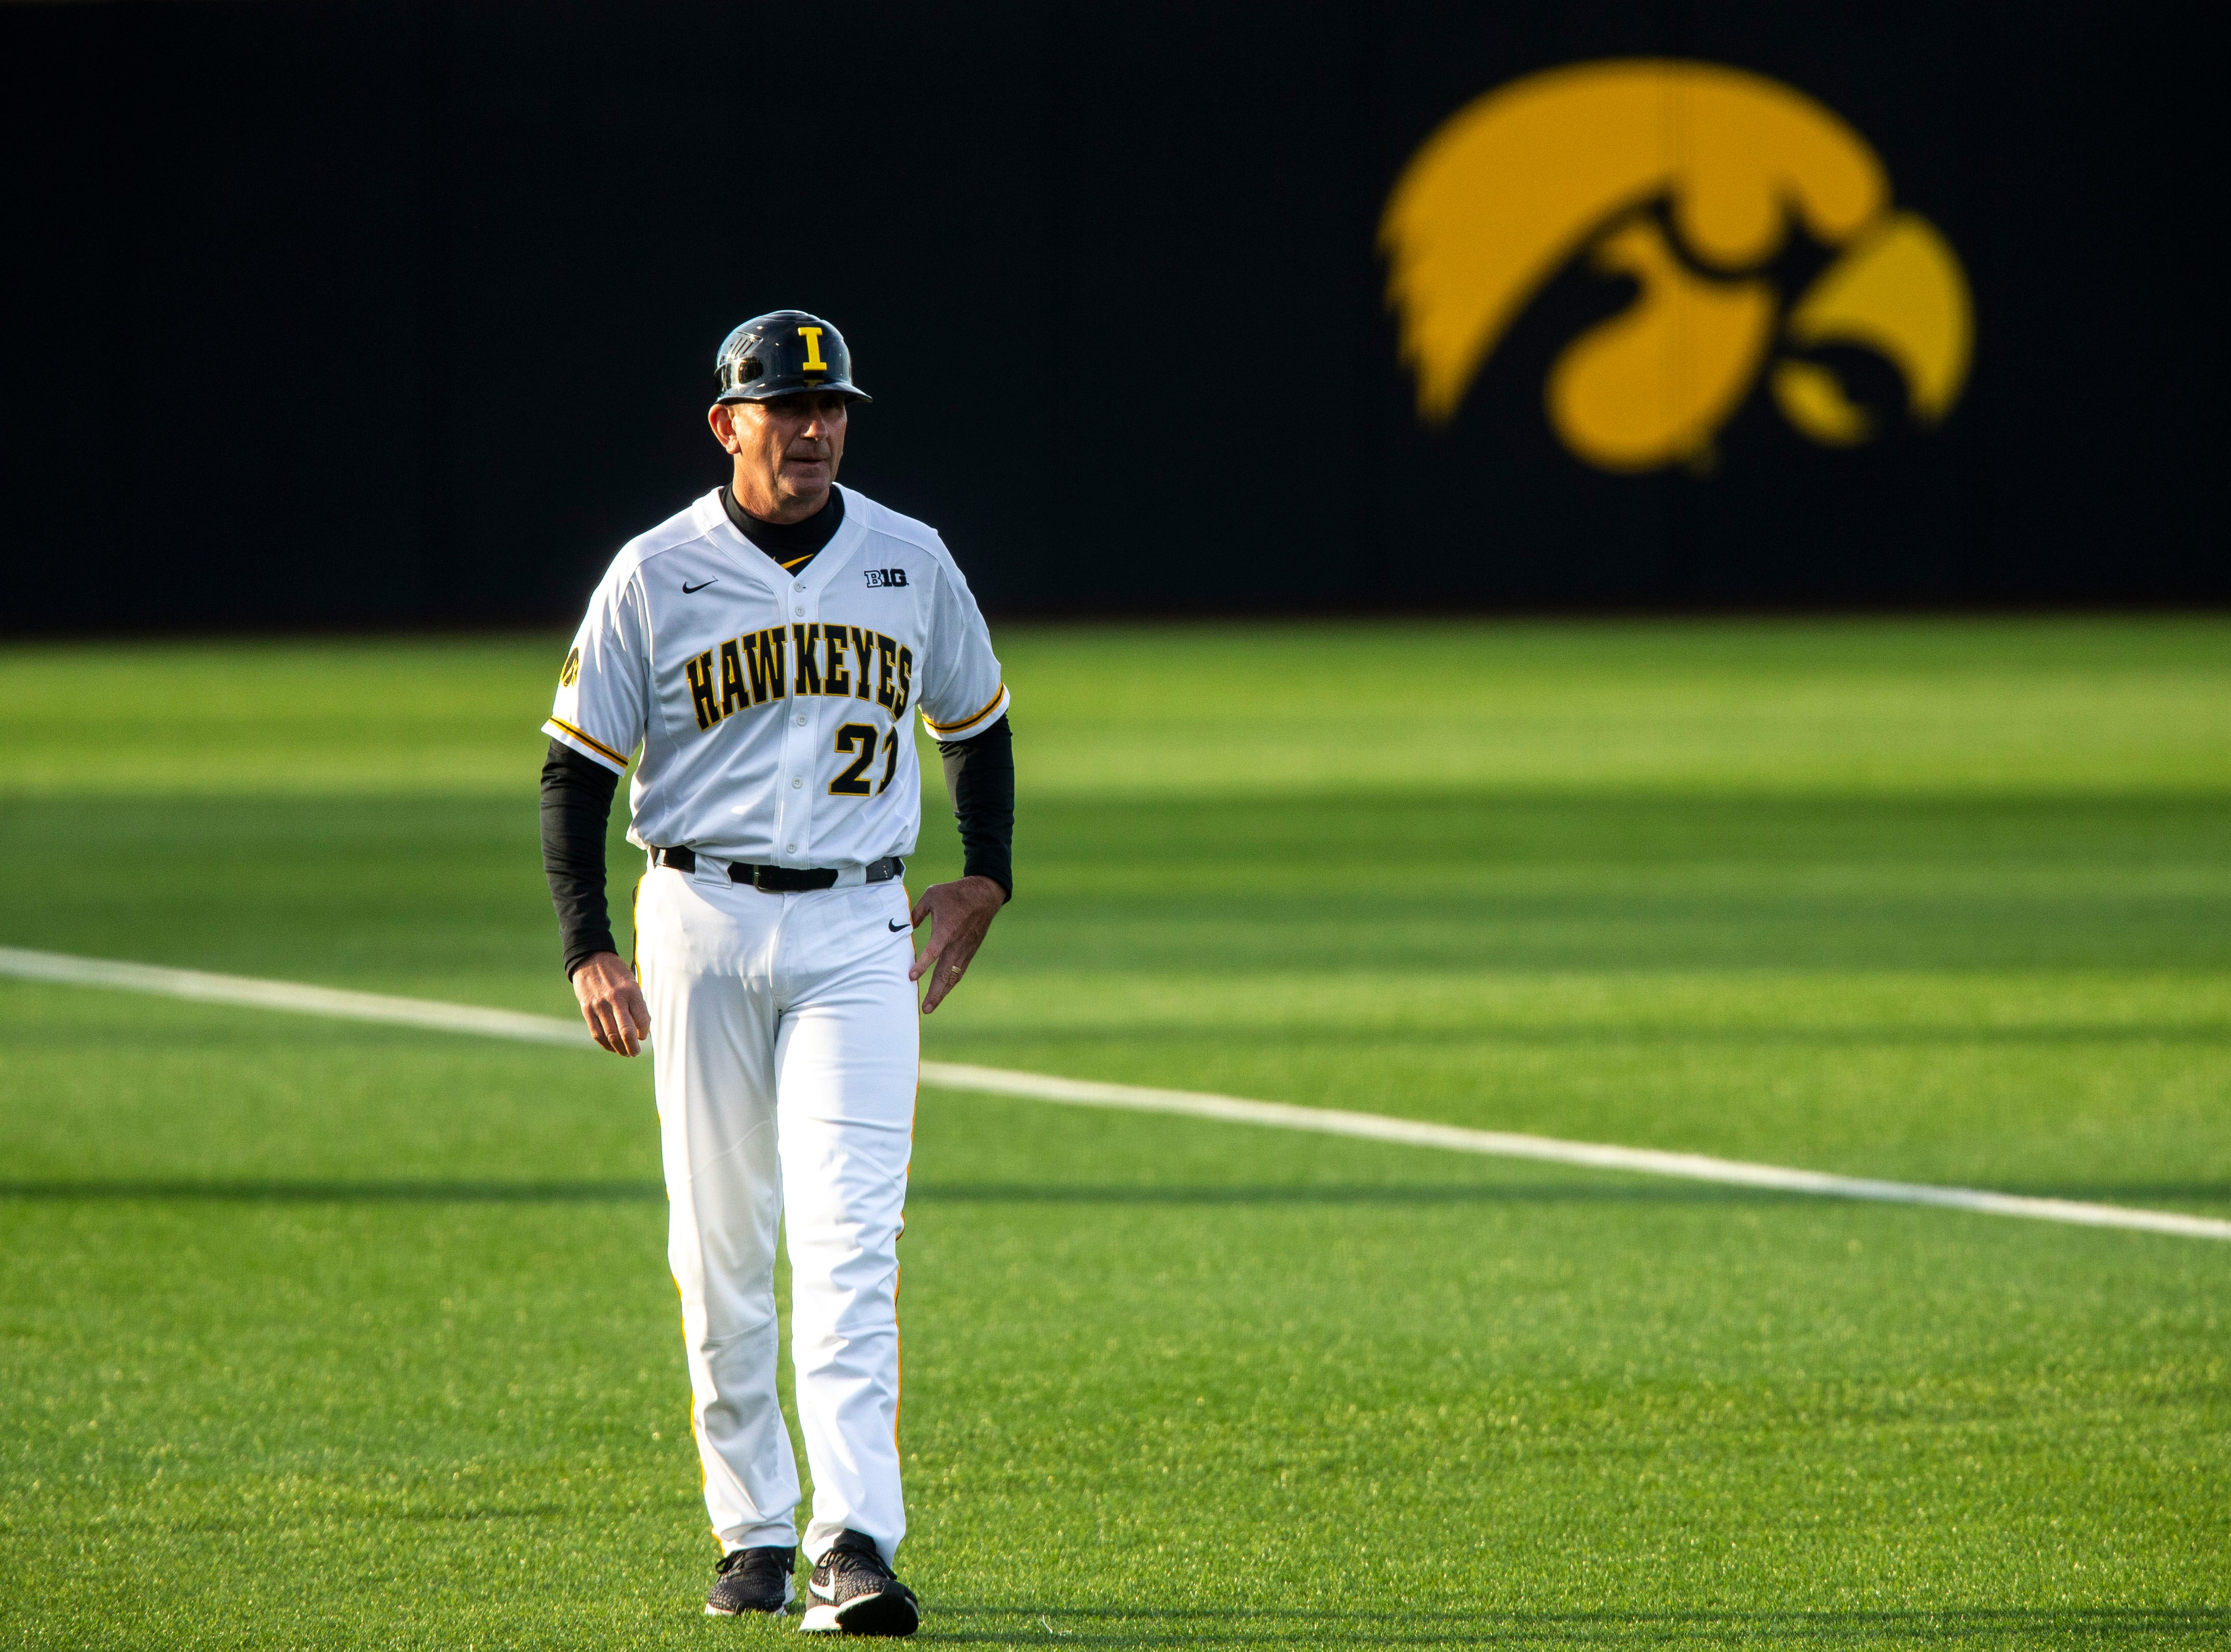 Iowa head coach Rick Heller stands along the third baseline during NCAA non conference baseball game, Friday, May 3, 2019, at Duane Banks Field in Iowa City, Iowa.